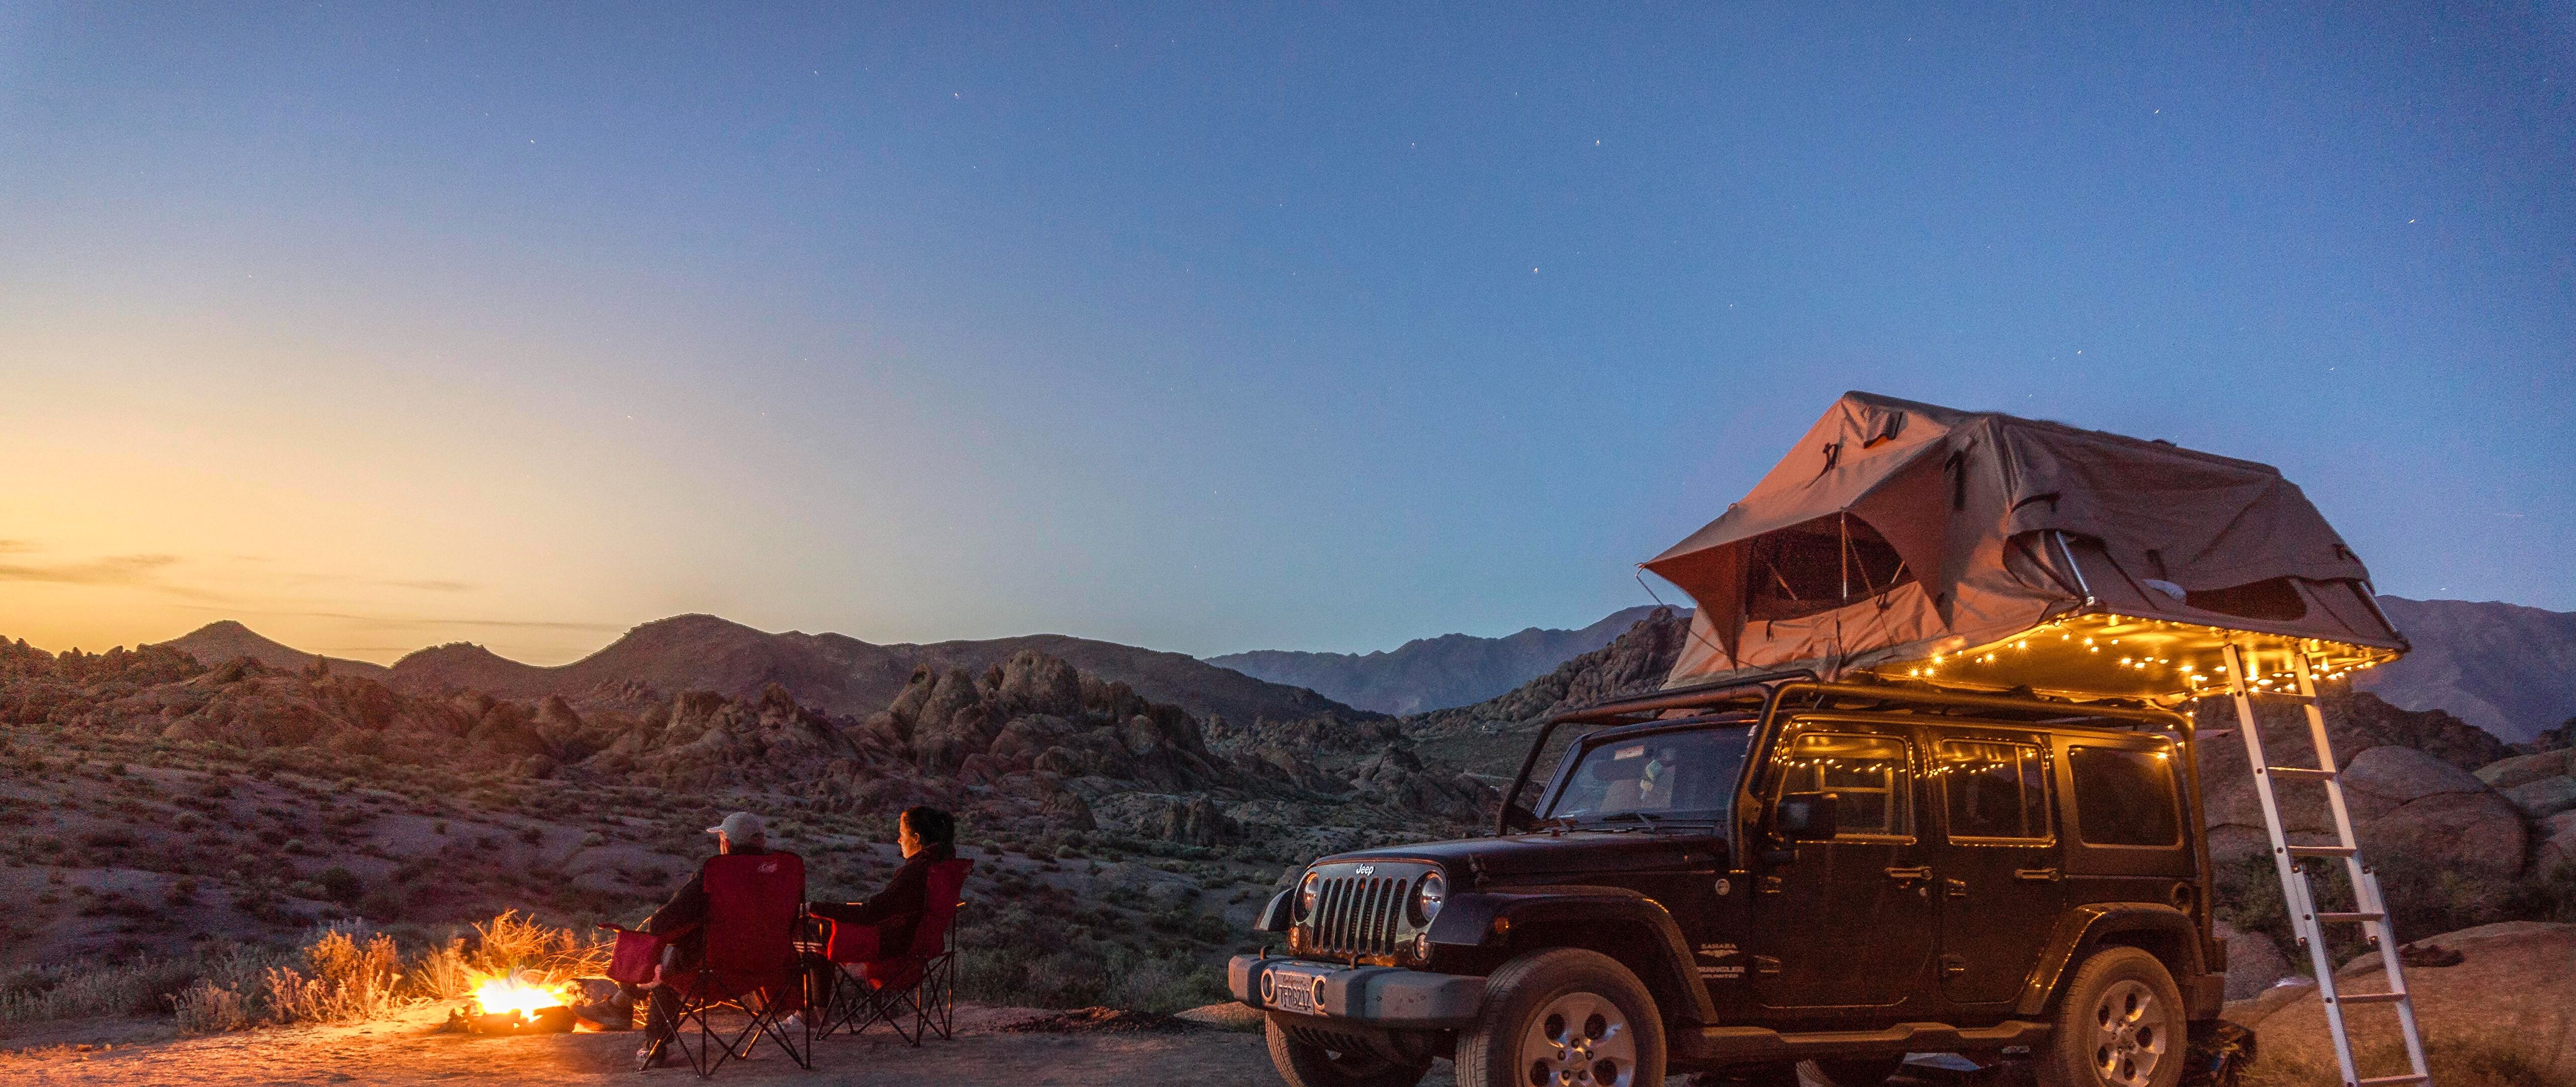 Camping 4k Wallpapers For Your Desktop Or Mobile Screen Free And Easy To Download